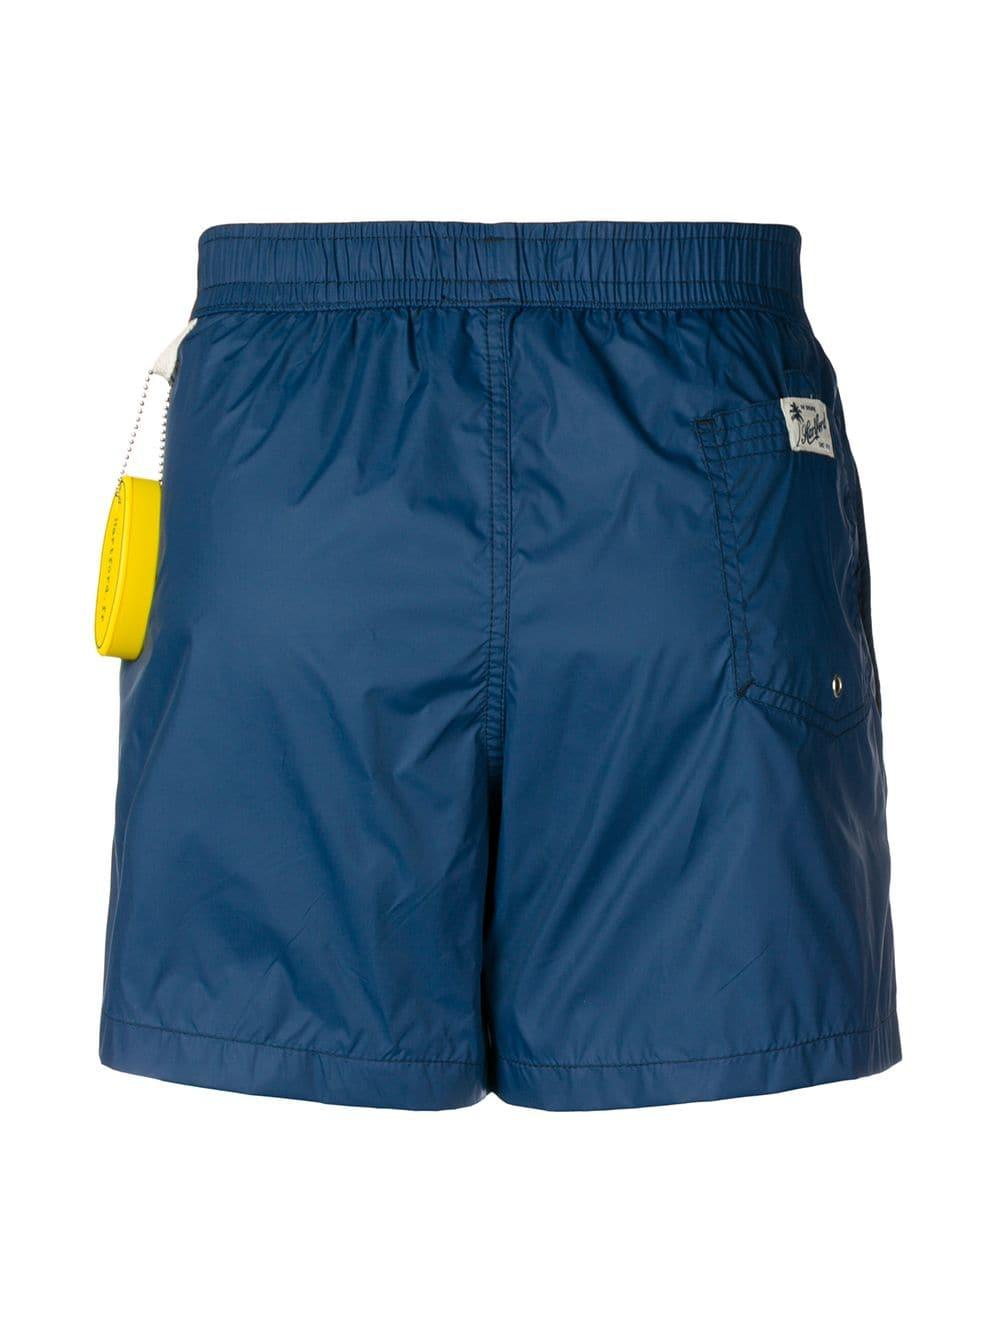 52495646ac1d Hartford Swimming Shorts in Blue for Men - Lyst